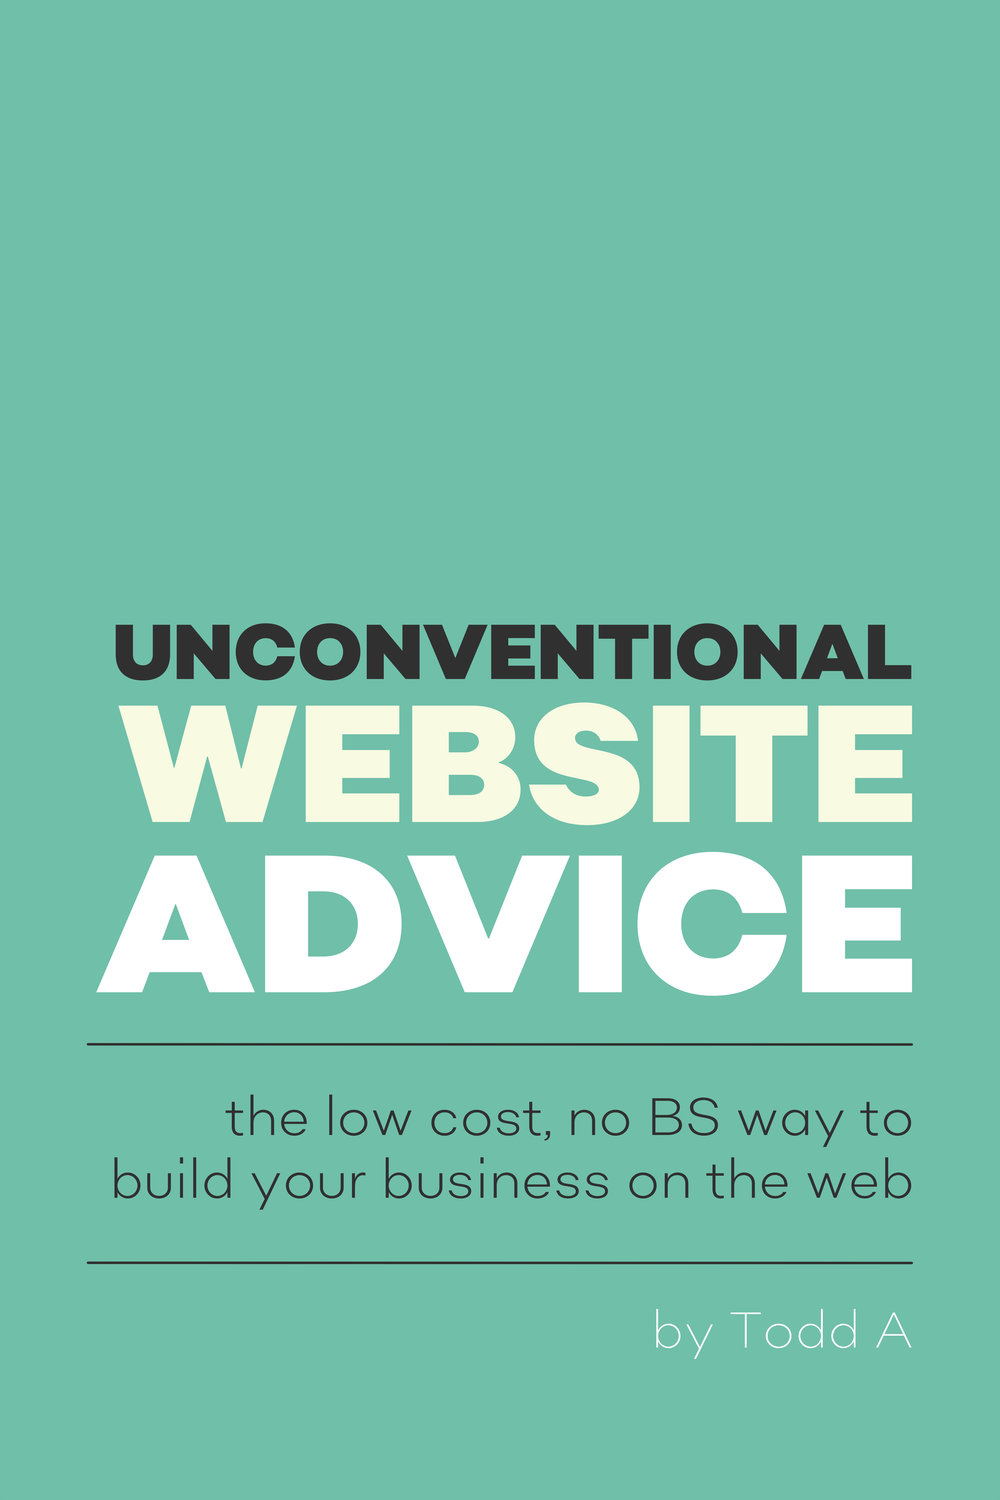 Unconventional Website Advice